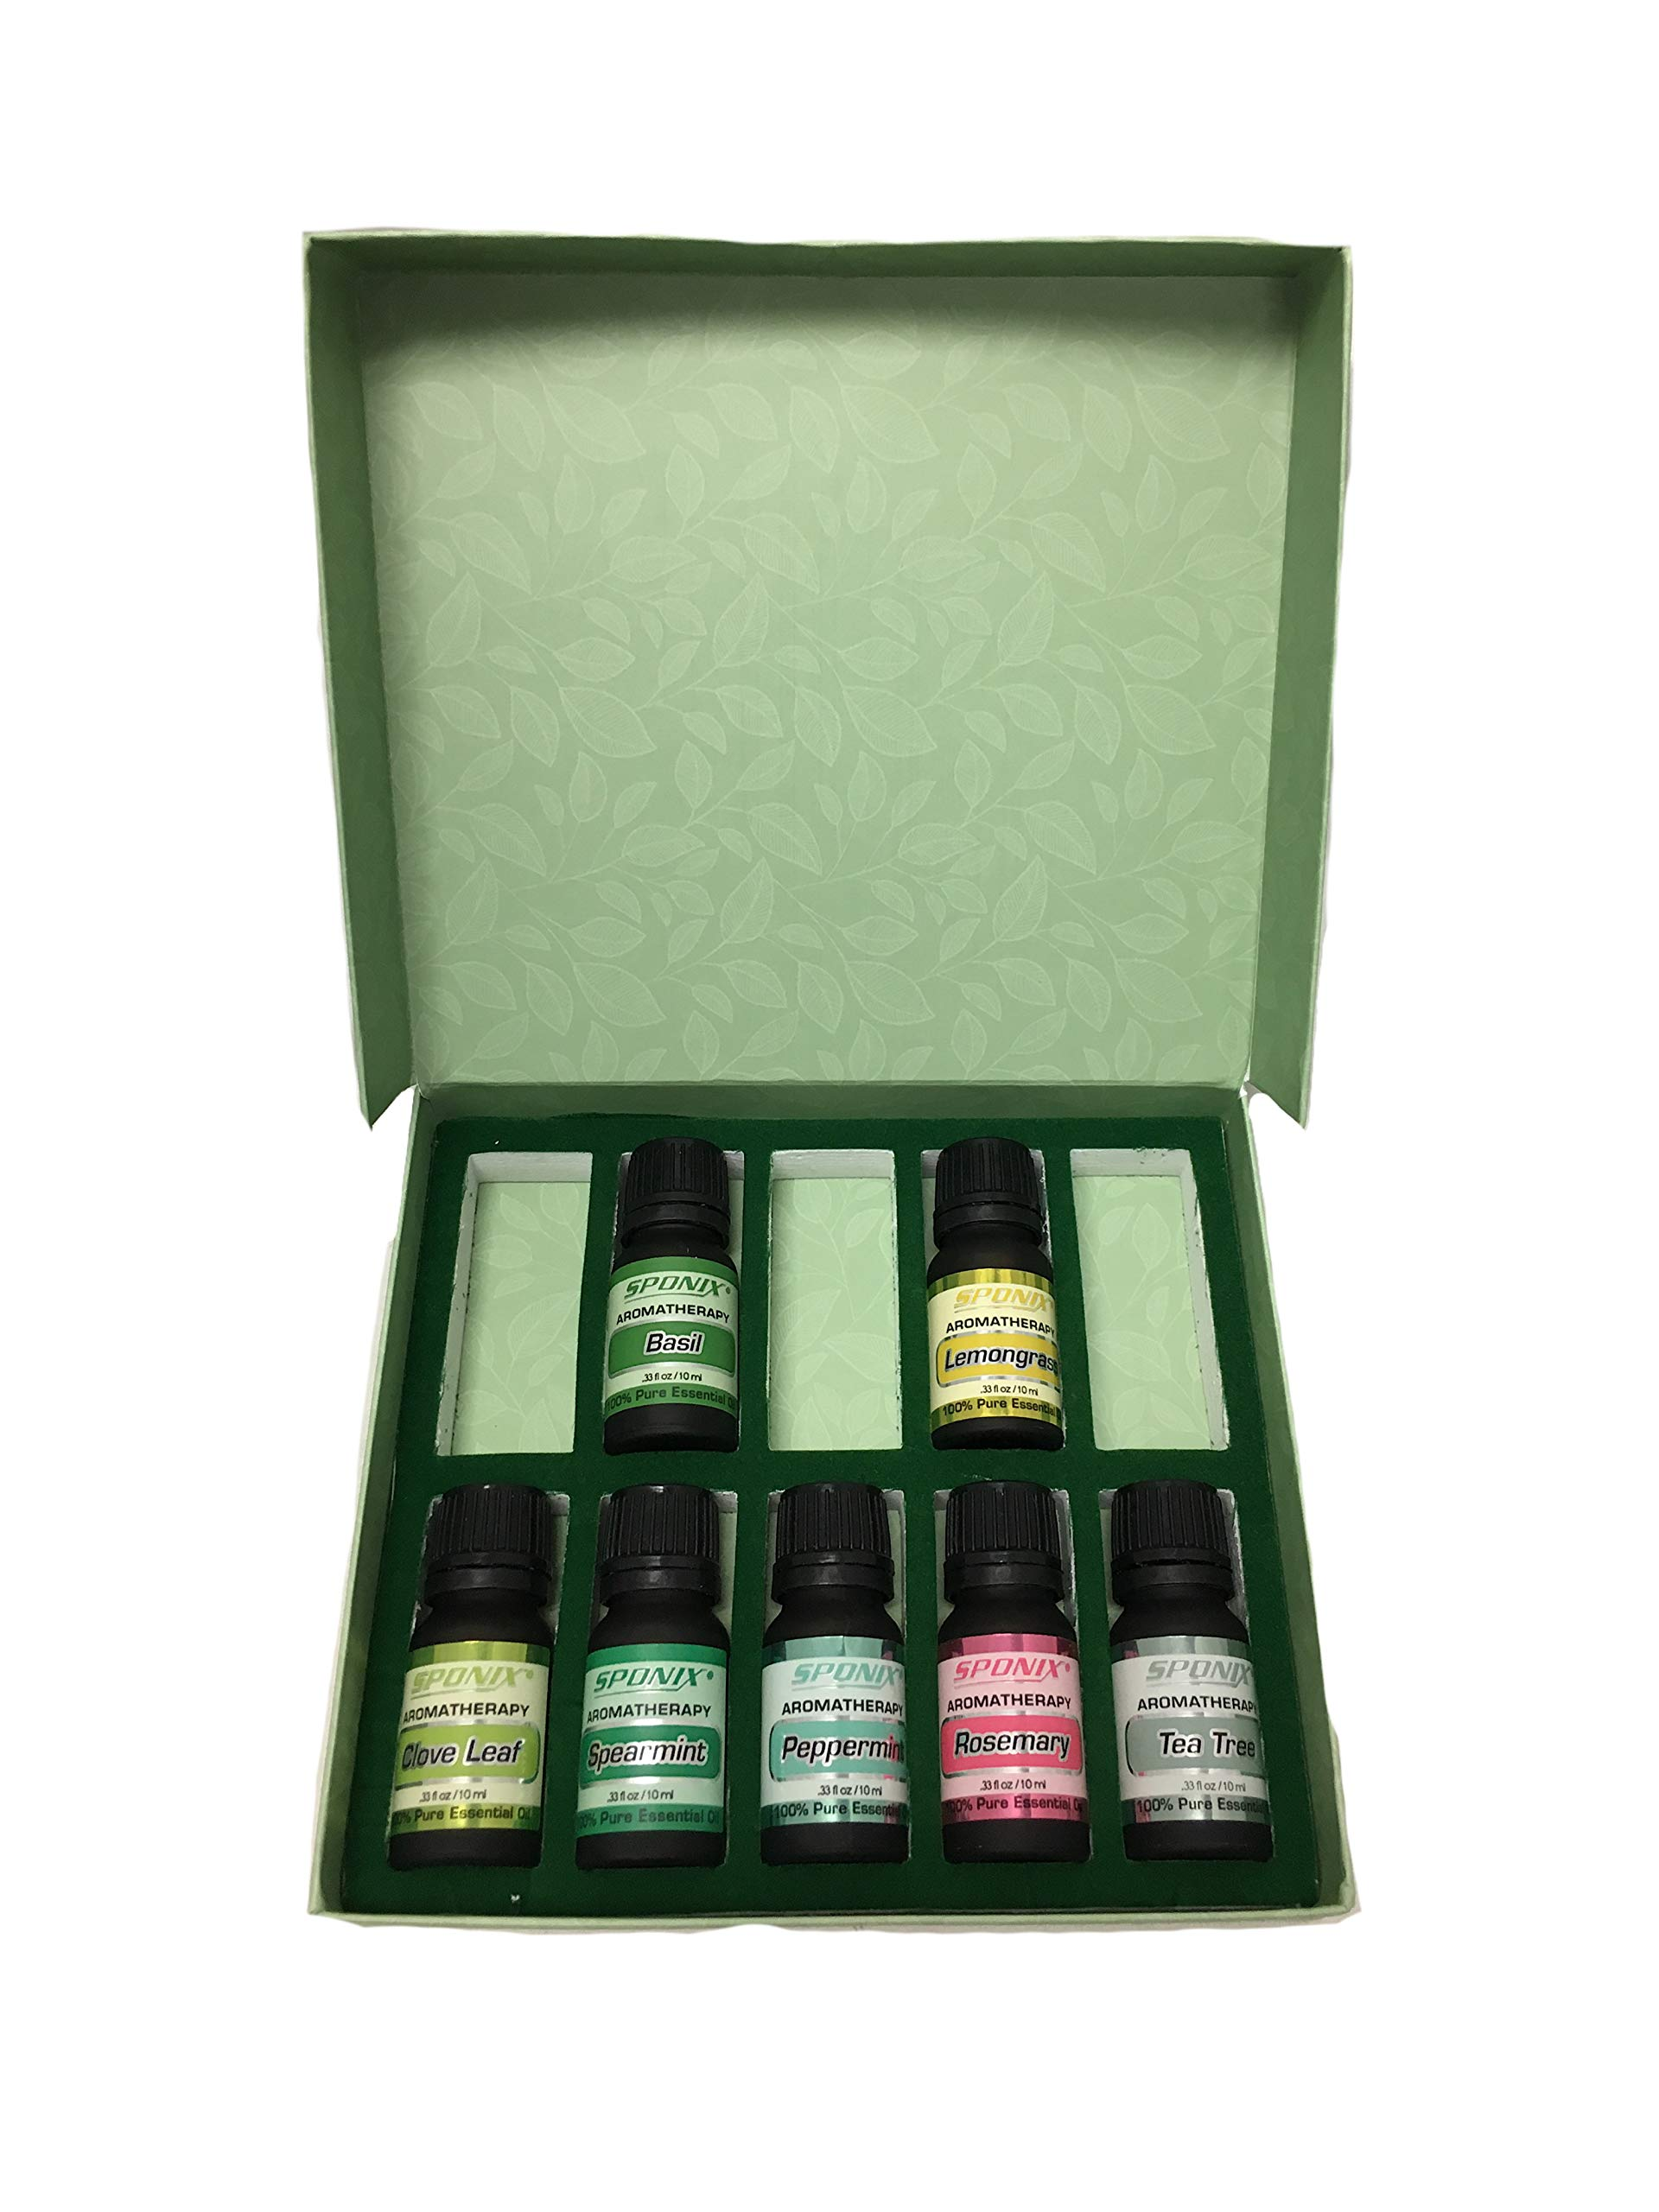 Top Essential Oil Gift Set - Best 7 Aromatherapy Oils - Clove Leaf, Lemongrass, Peppermint, Rosemary, Tea Tree, Basil, Spearmint - Therapeutic Grade and Premium Quality - 10 mL by Sponix by Sponix